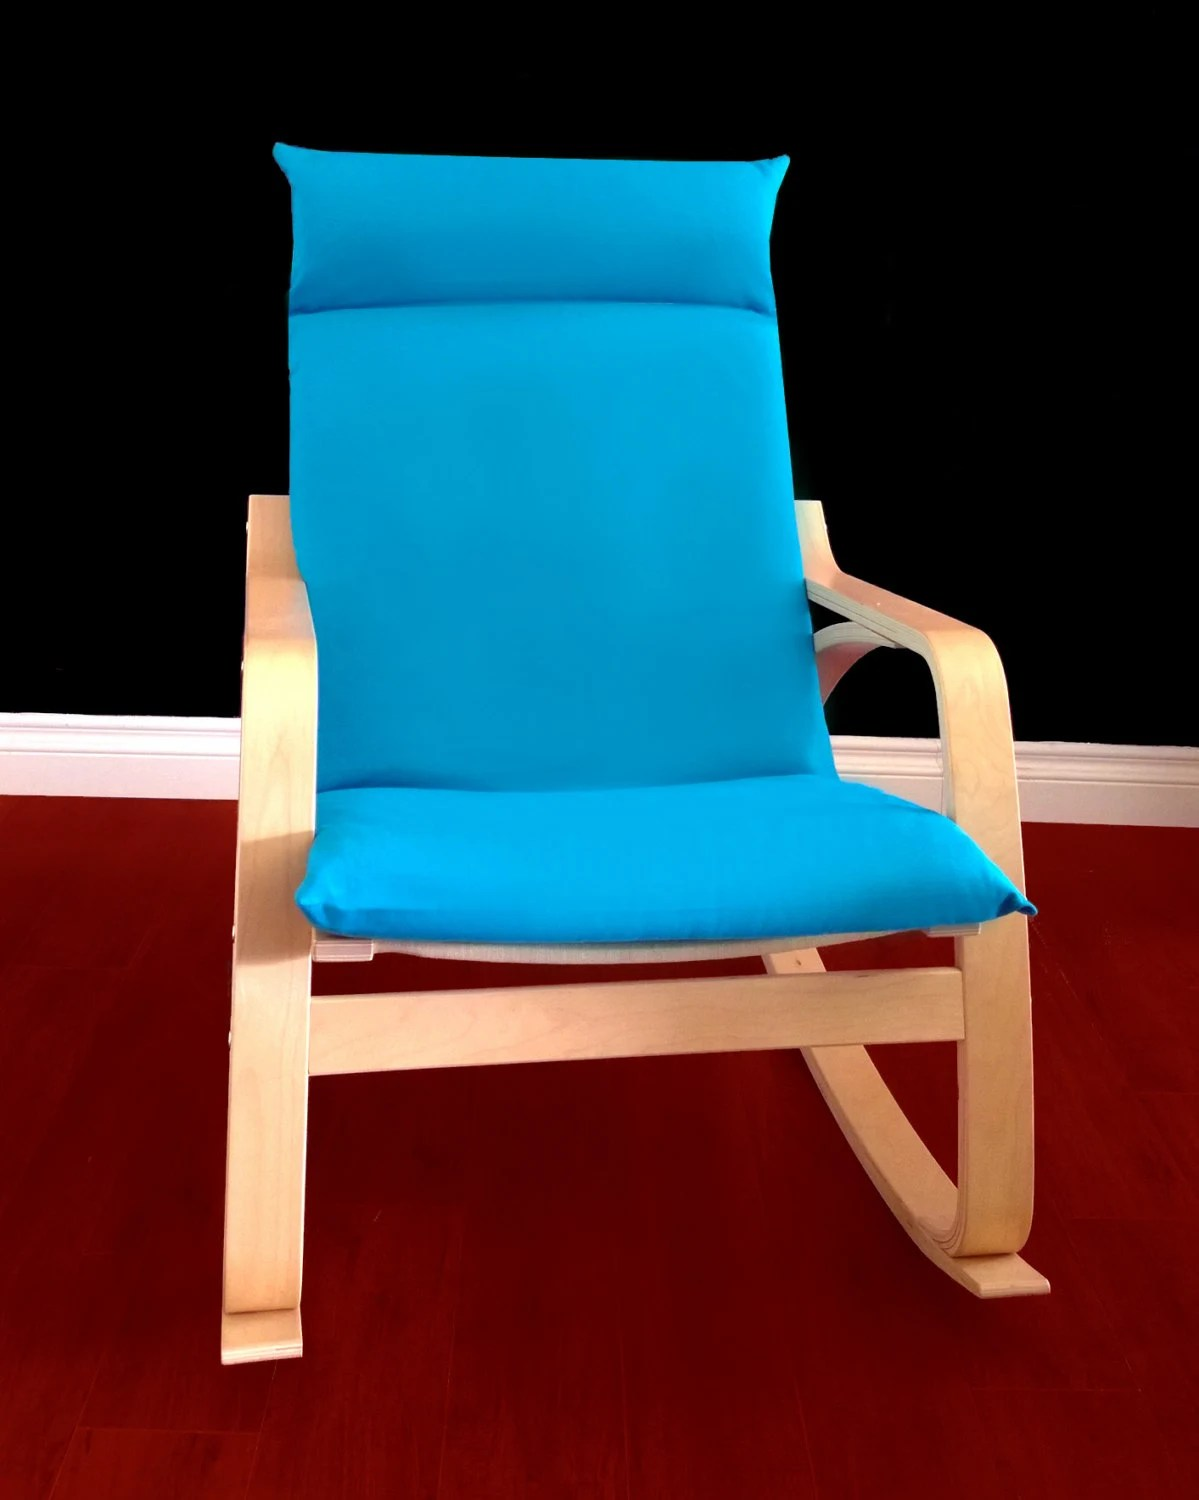 ikea poang chair review hanging nigeria turquoise cover solid blue seat